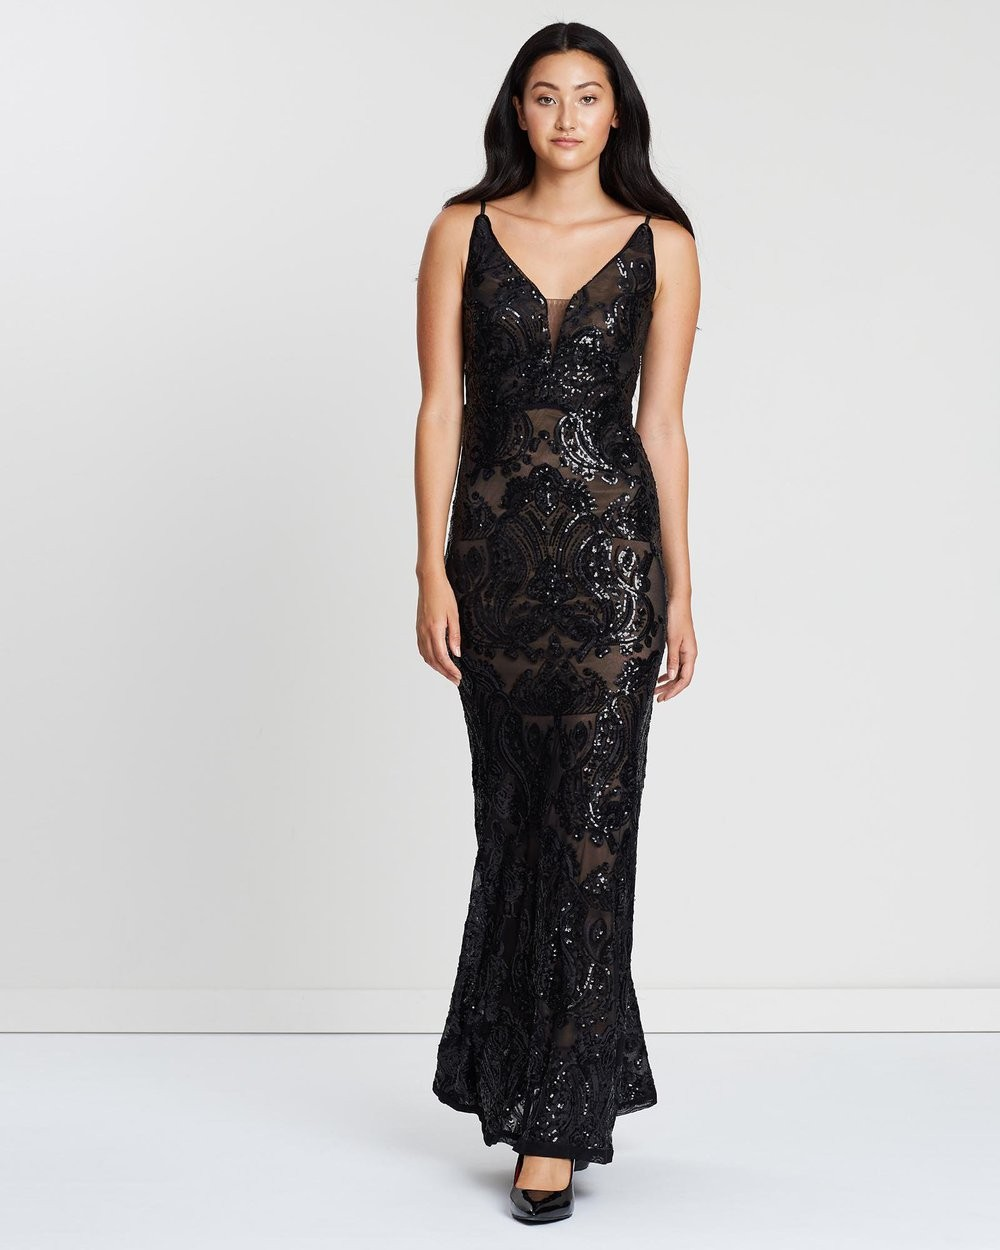 ff8b7653c918 What Kind Of Dress Should I Wear To A Black Tie Wedding